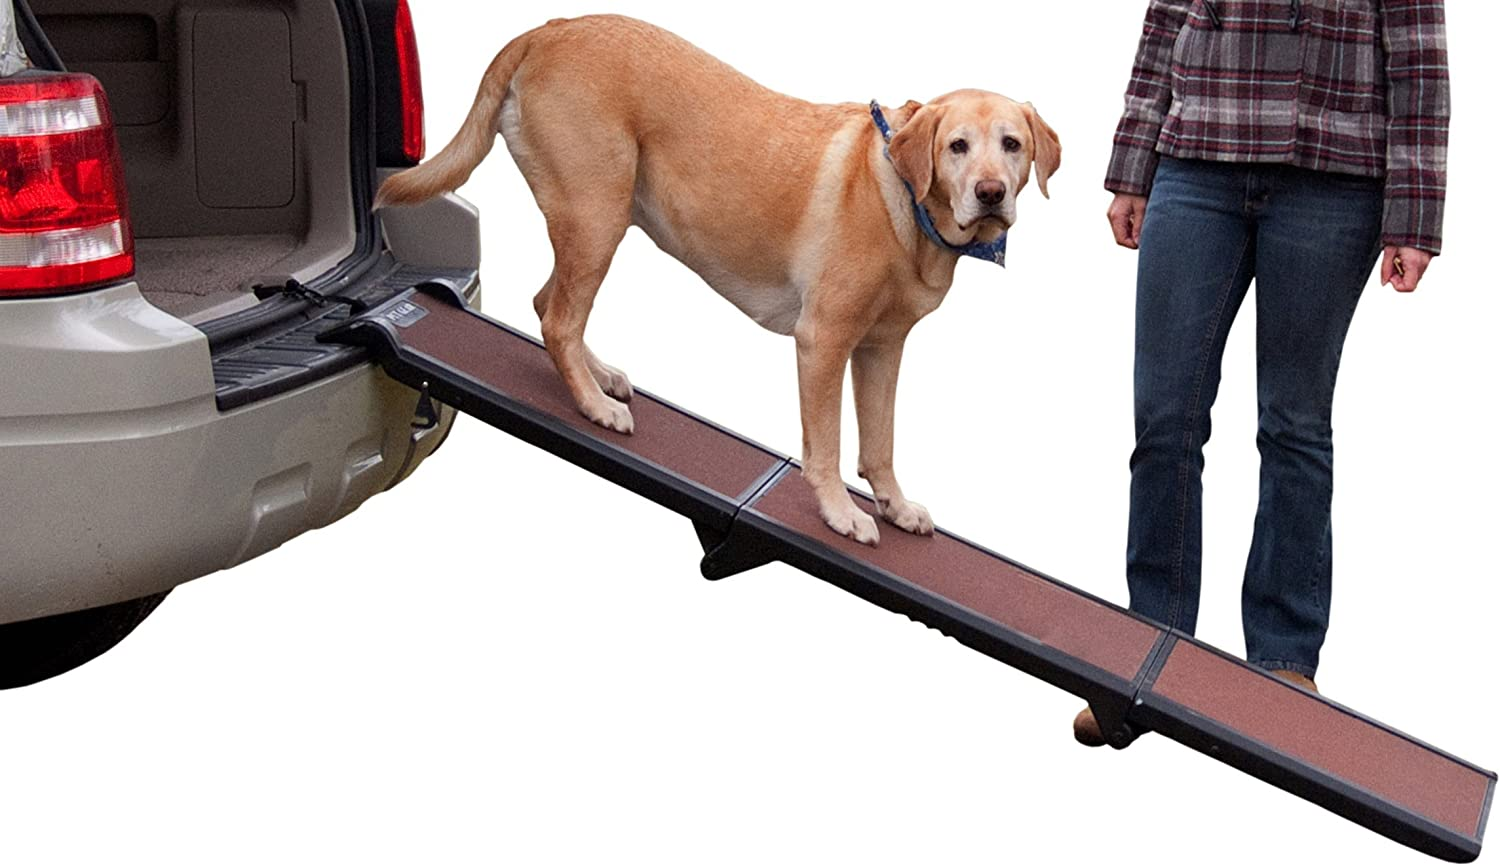 Pet Gear Tri Fold Ramp Supports Up To 200lbs 71 In Long Patented Compact Easy Fold Design Two Models To Choose From Safety Tether Included Automotive Pet Ramps Pet Supplies